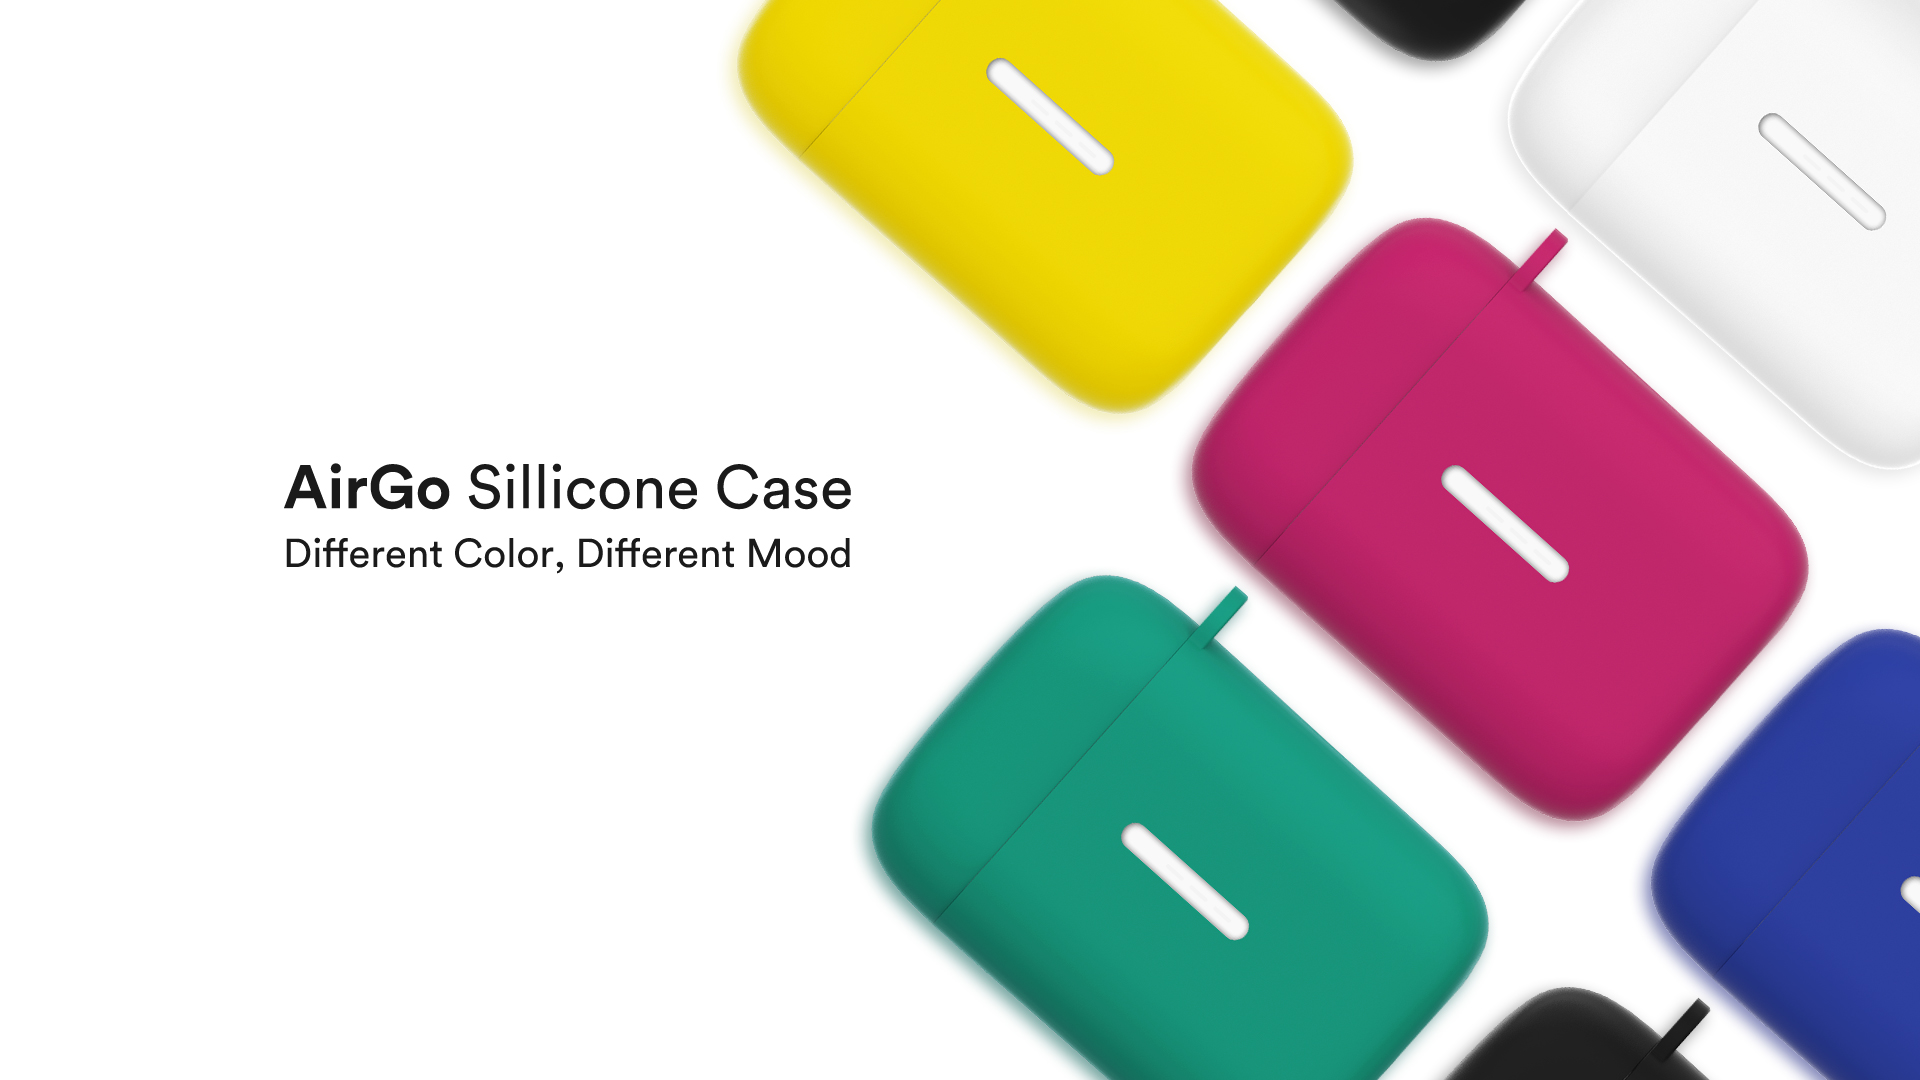 AirGo-Sillicone-Case-产品详情页_01.jpg